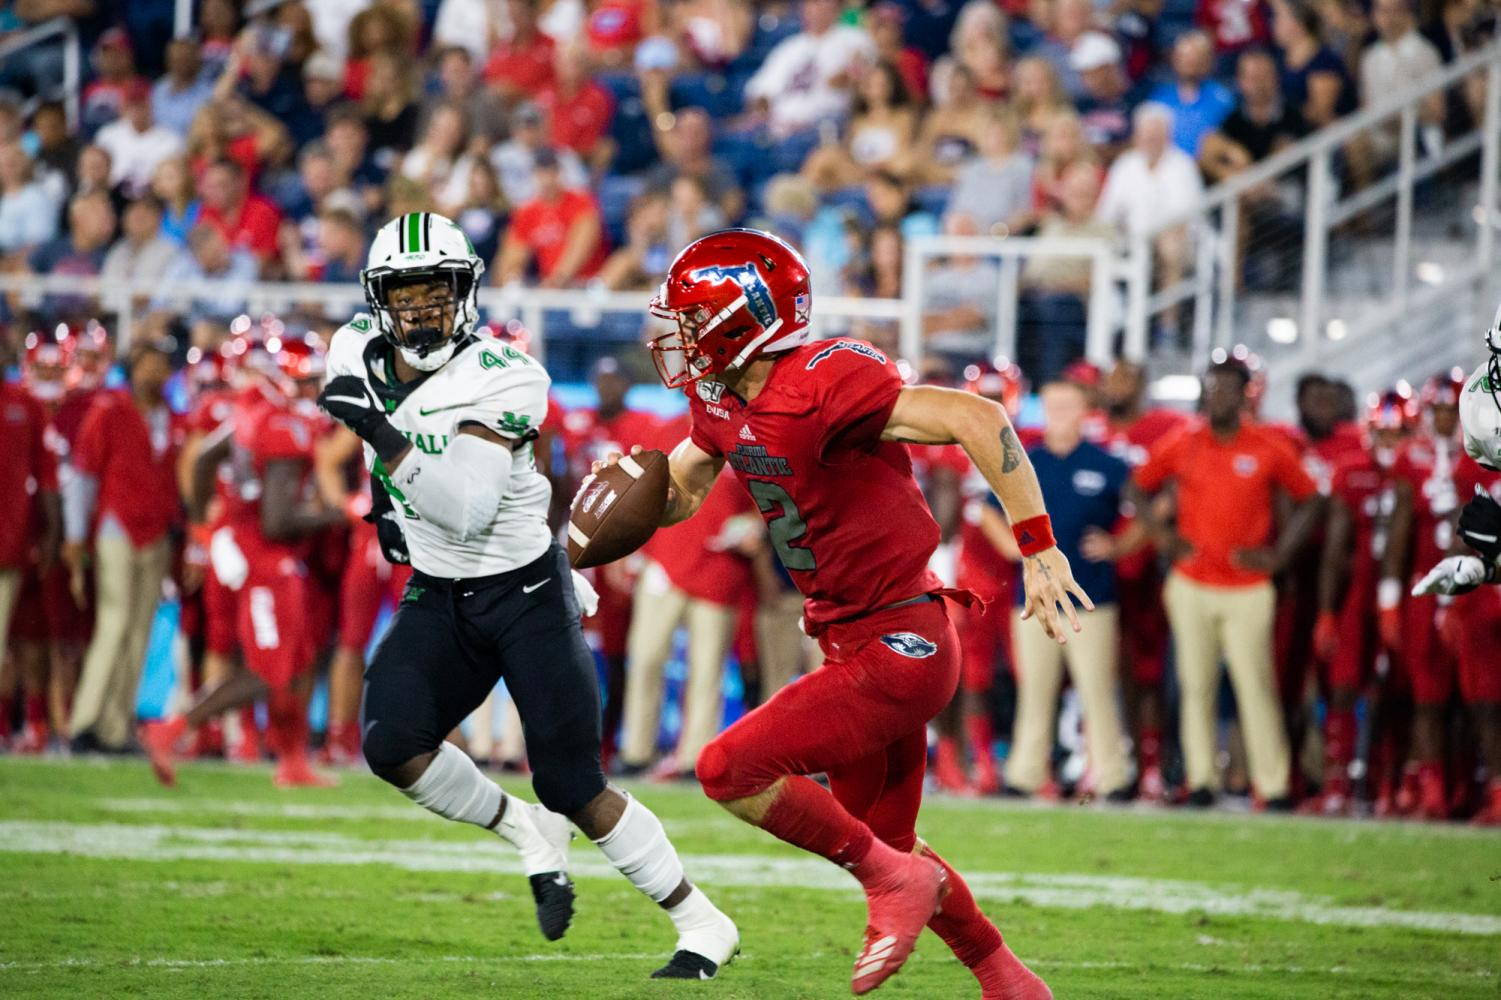 Quarterback Chris Robison completed 21 of 39 passes for 362 yards with no touchdowns and one interception in the loss against Marshall. Photo by: Alex Liscio.